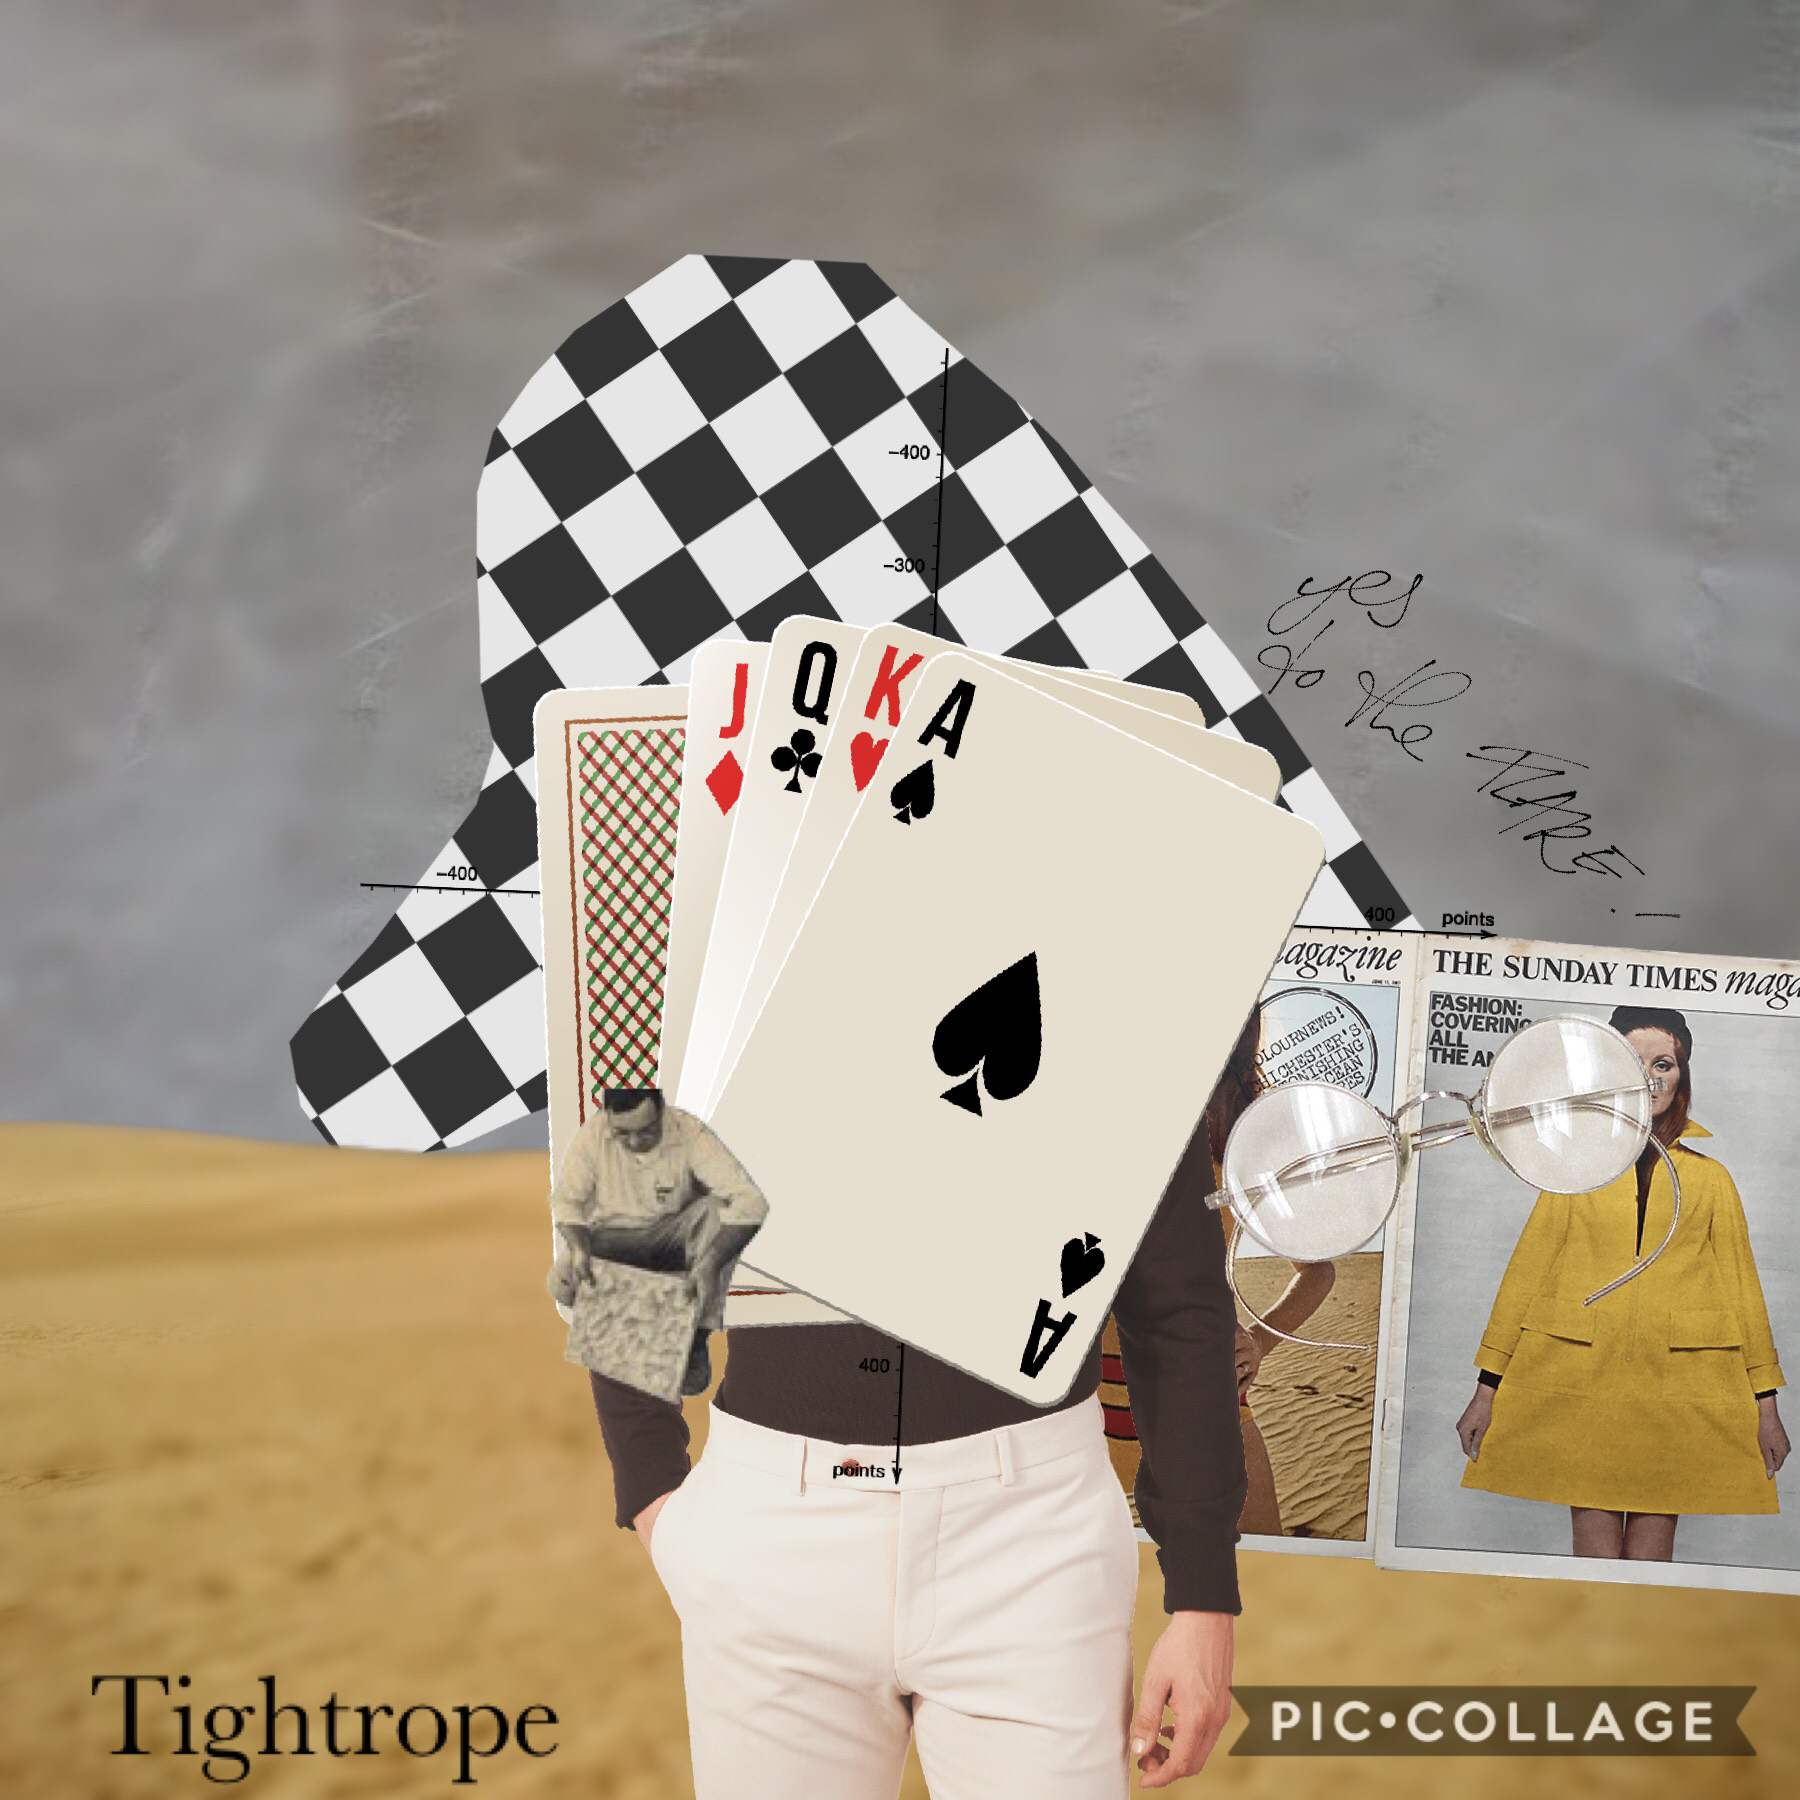 Collage by tightrope